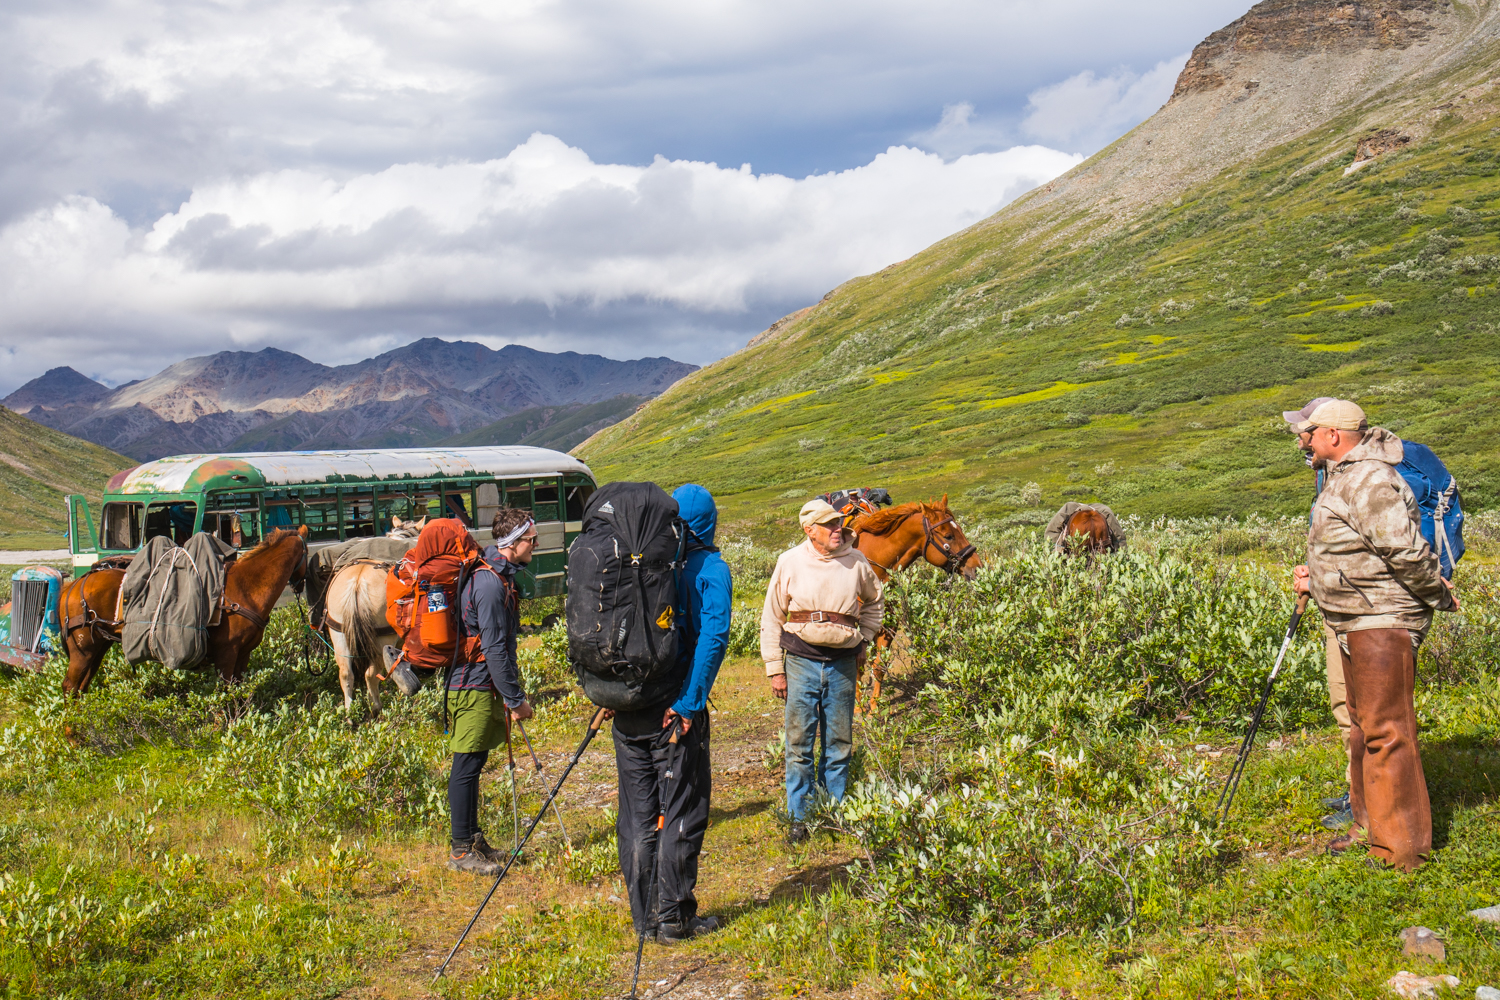 Meeting People In The Backcountry - Healy Creek